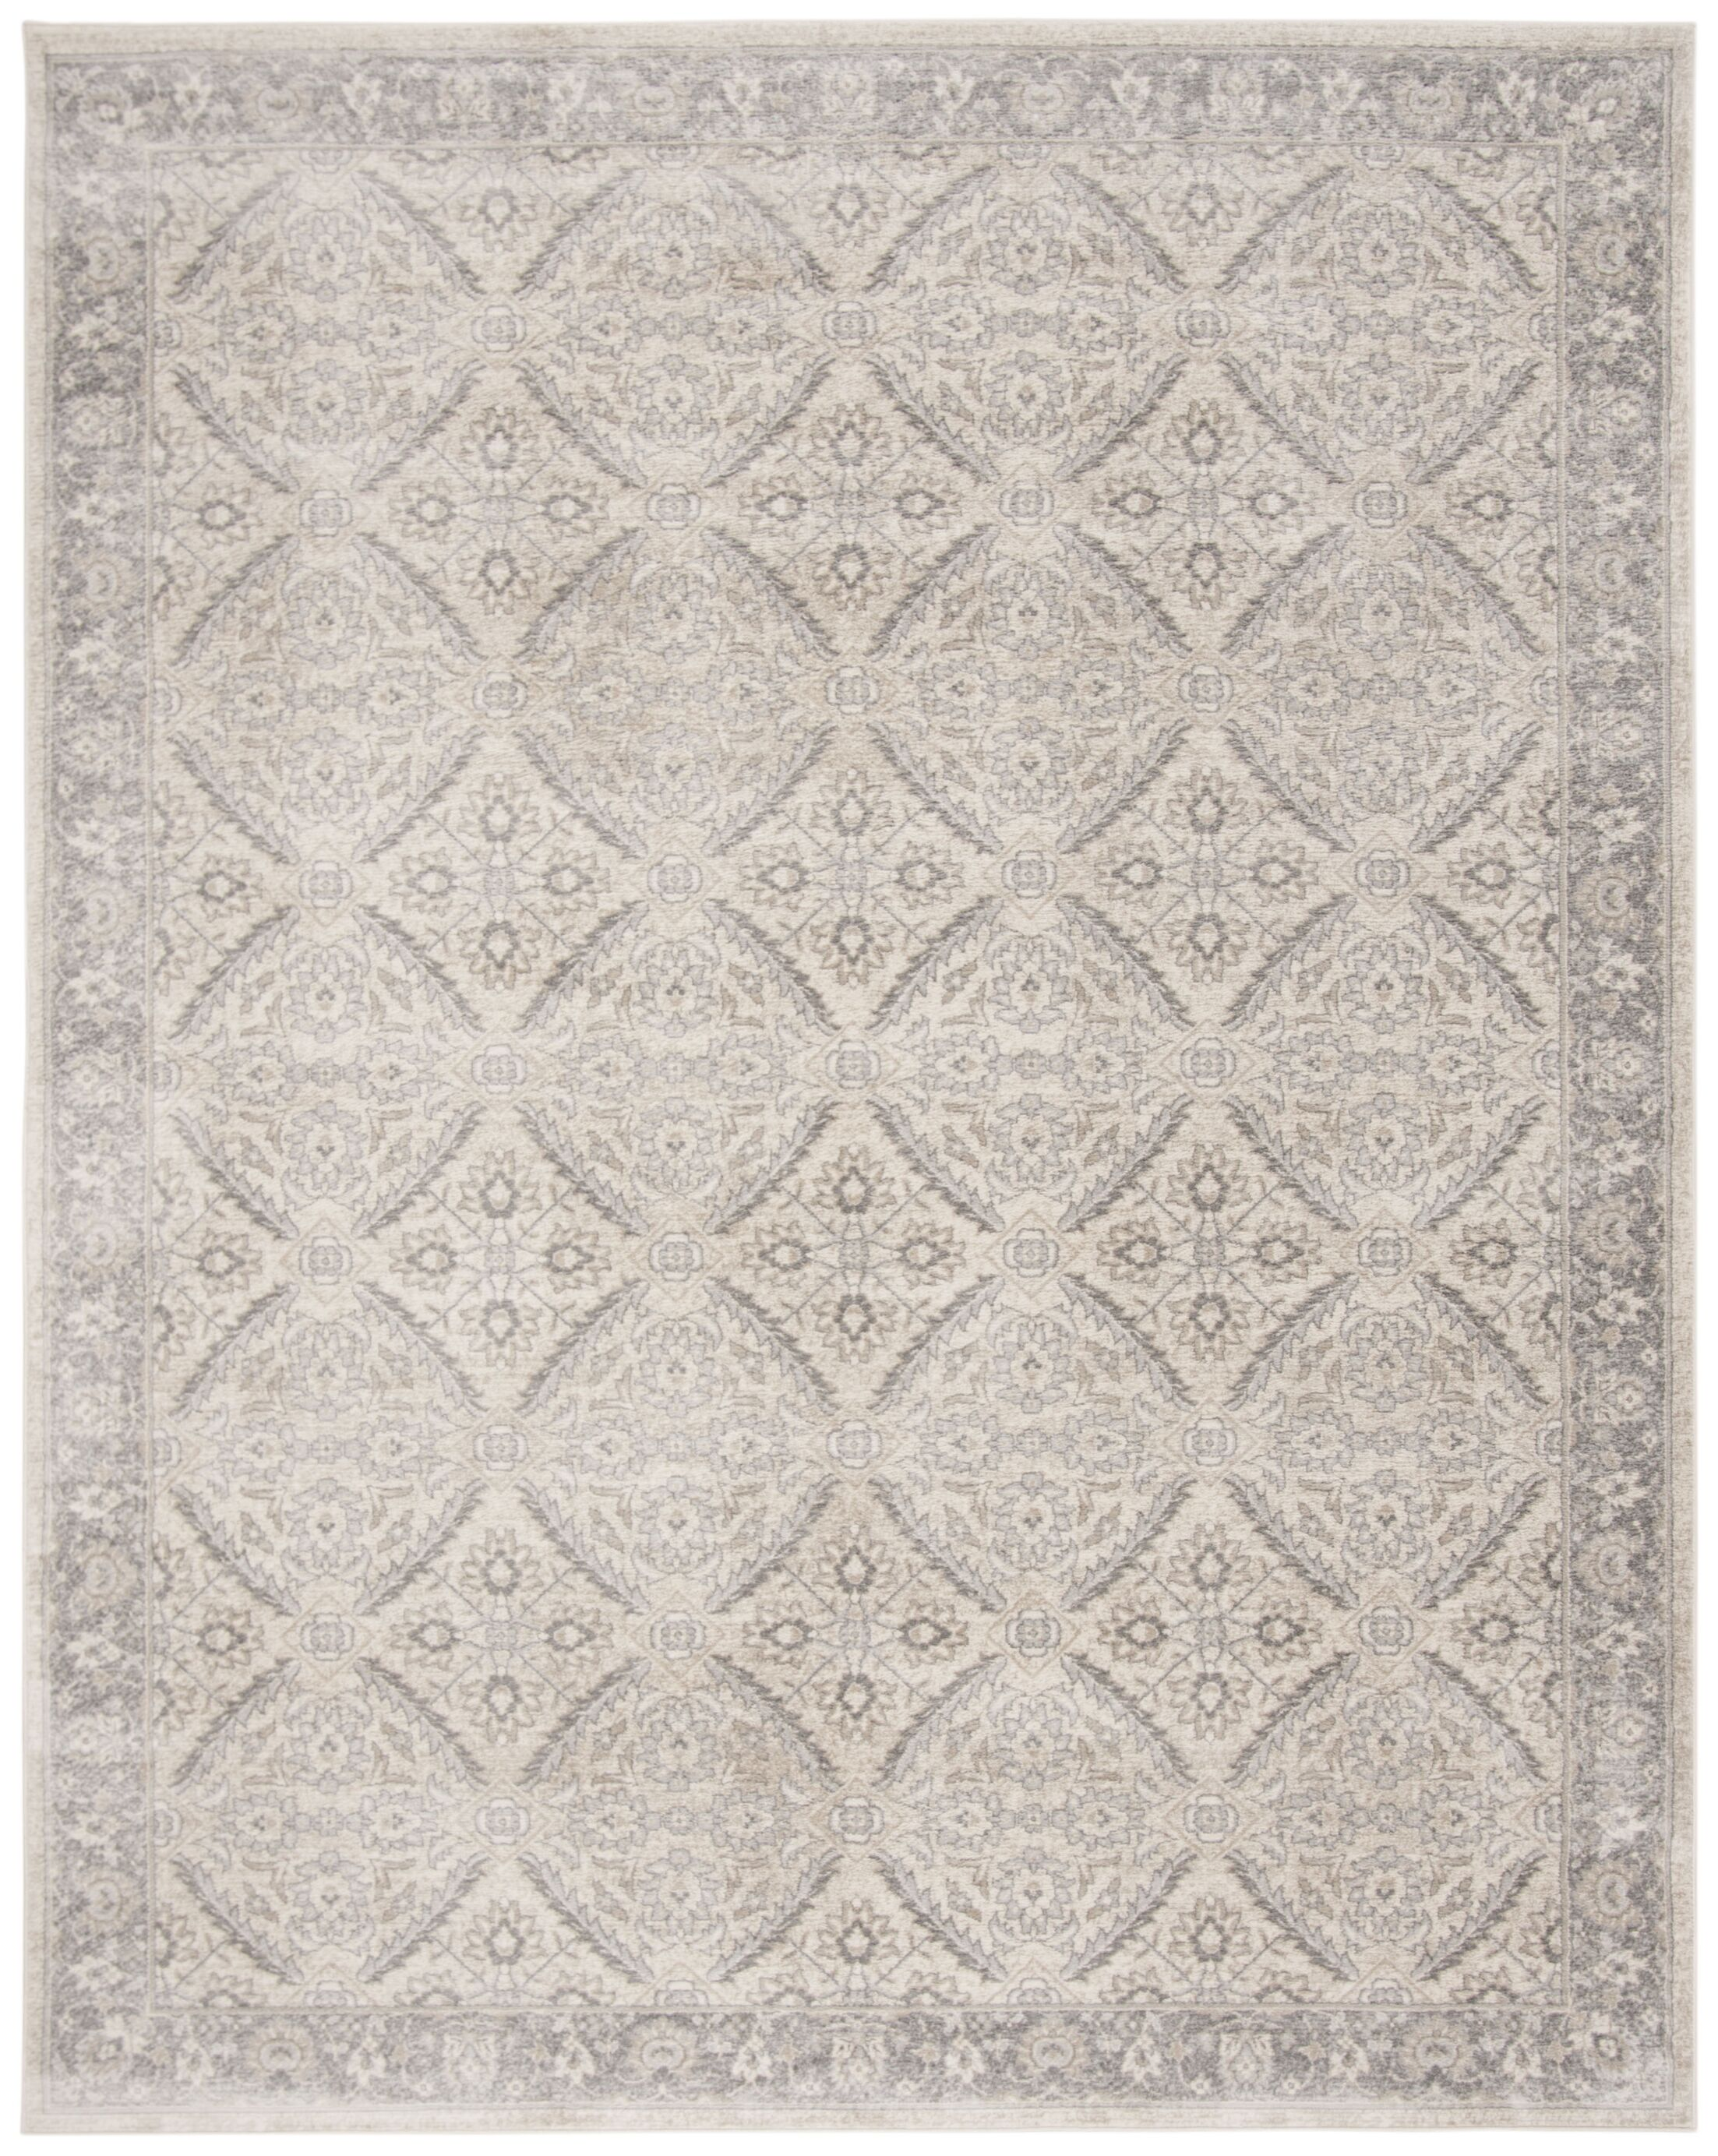 Lamartine Cream/Gray Area Rug Rug Size: Rectangle 8' x 10'